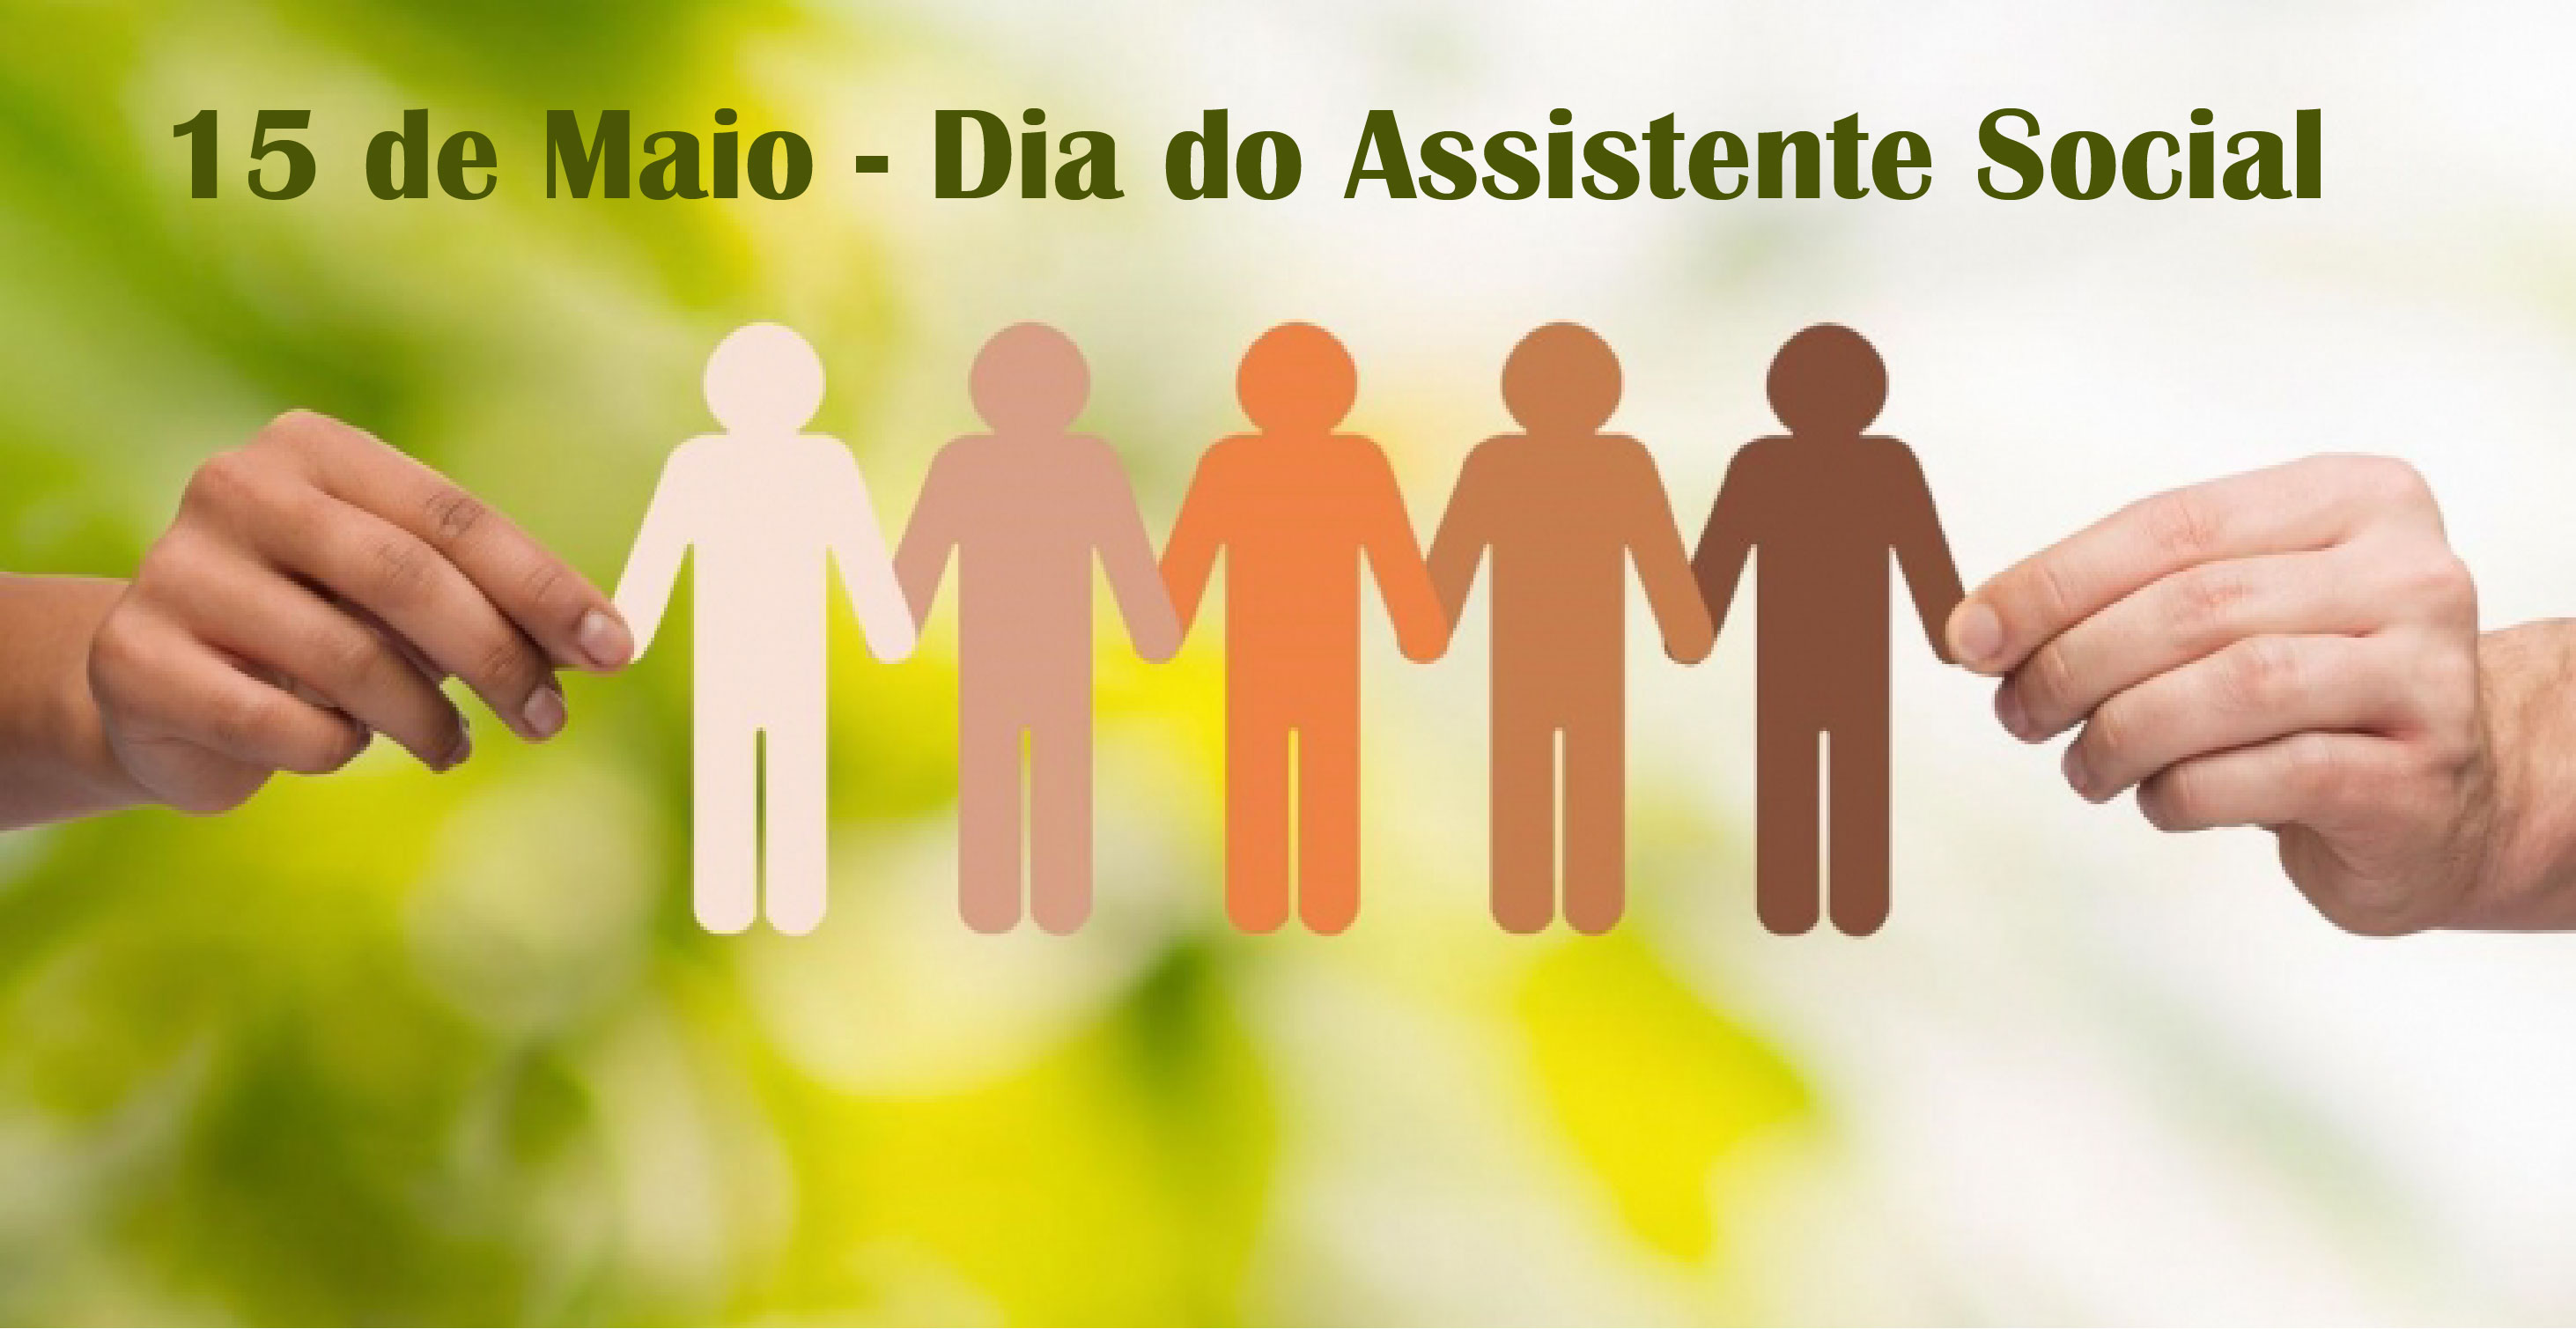 15 de maio: Dia do Assistente Social | ASFEB